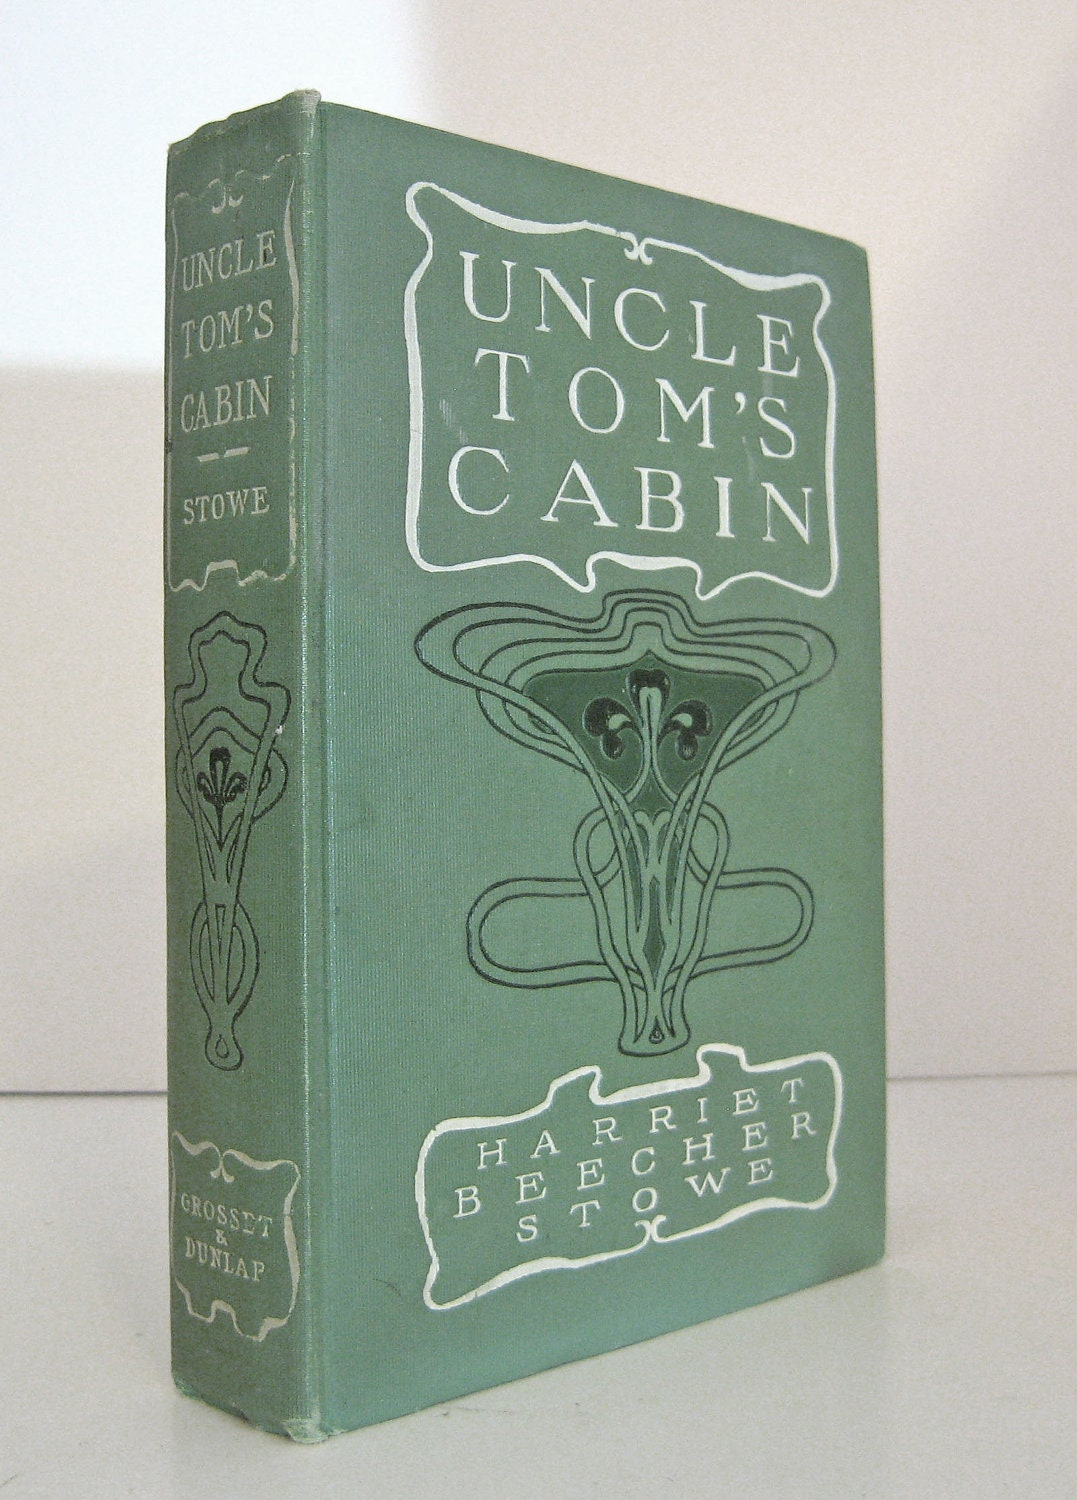 uncle tom s cabin by harriet beecher stowe early grosset eth159148142zoom